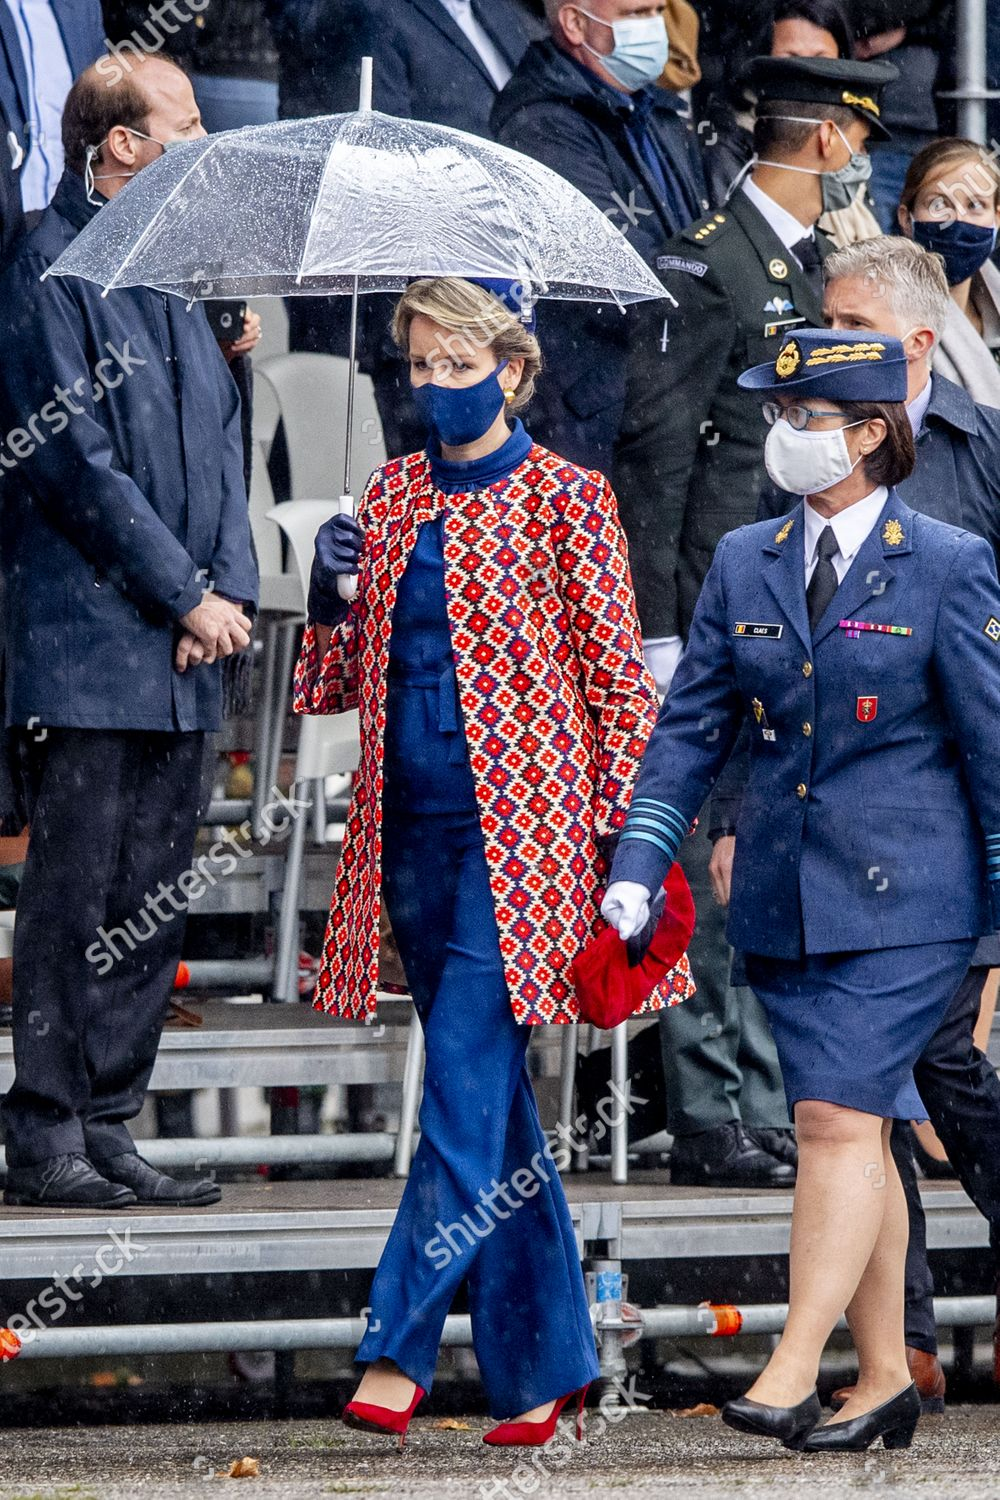 belgian-royals-attend-ceremony-for-the-presentation-of-the-blue-berets-royal-military-academy-erm-brussels-belgium-shutterstock-editorial-10790505e.jpg